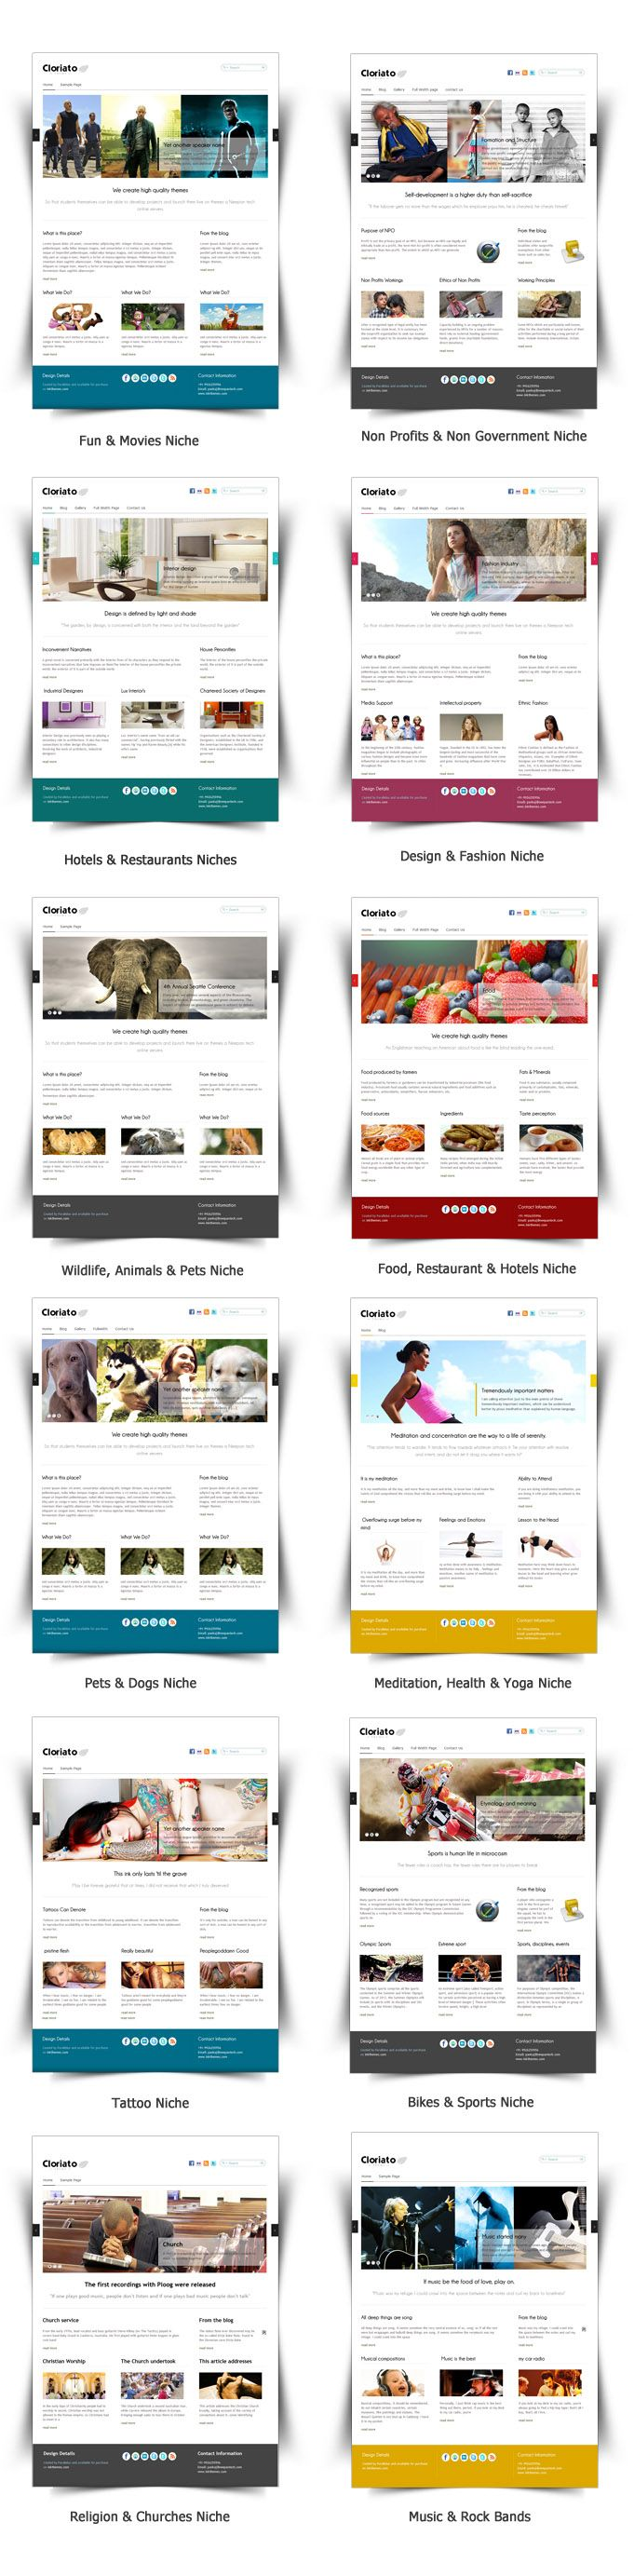 Grab it fast only $ 45 Cloriato Theme Cloriato WordPress Theme is available in 6 different colors schemes. Cloriato Theme can be used to built websites in various different Niches very easily.